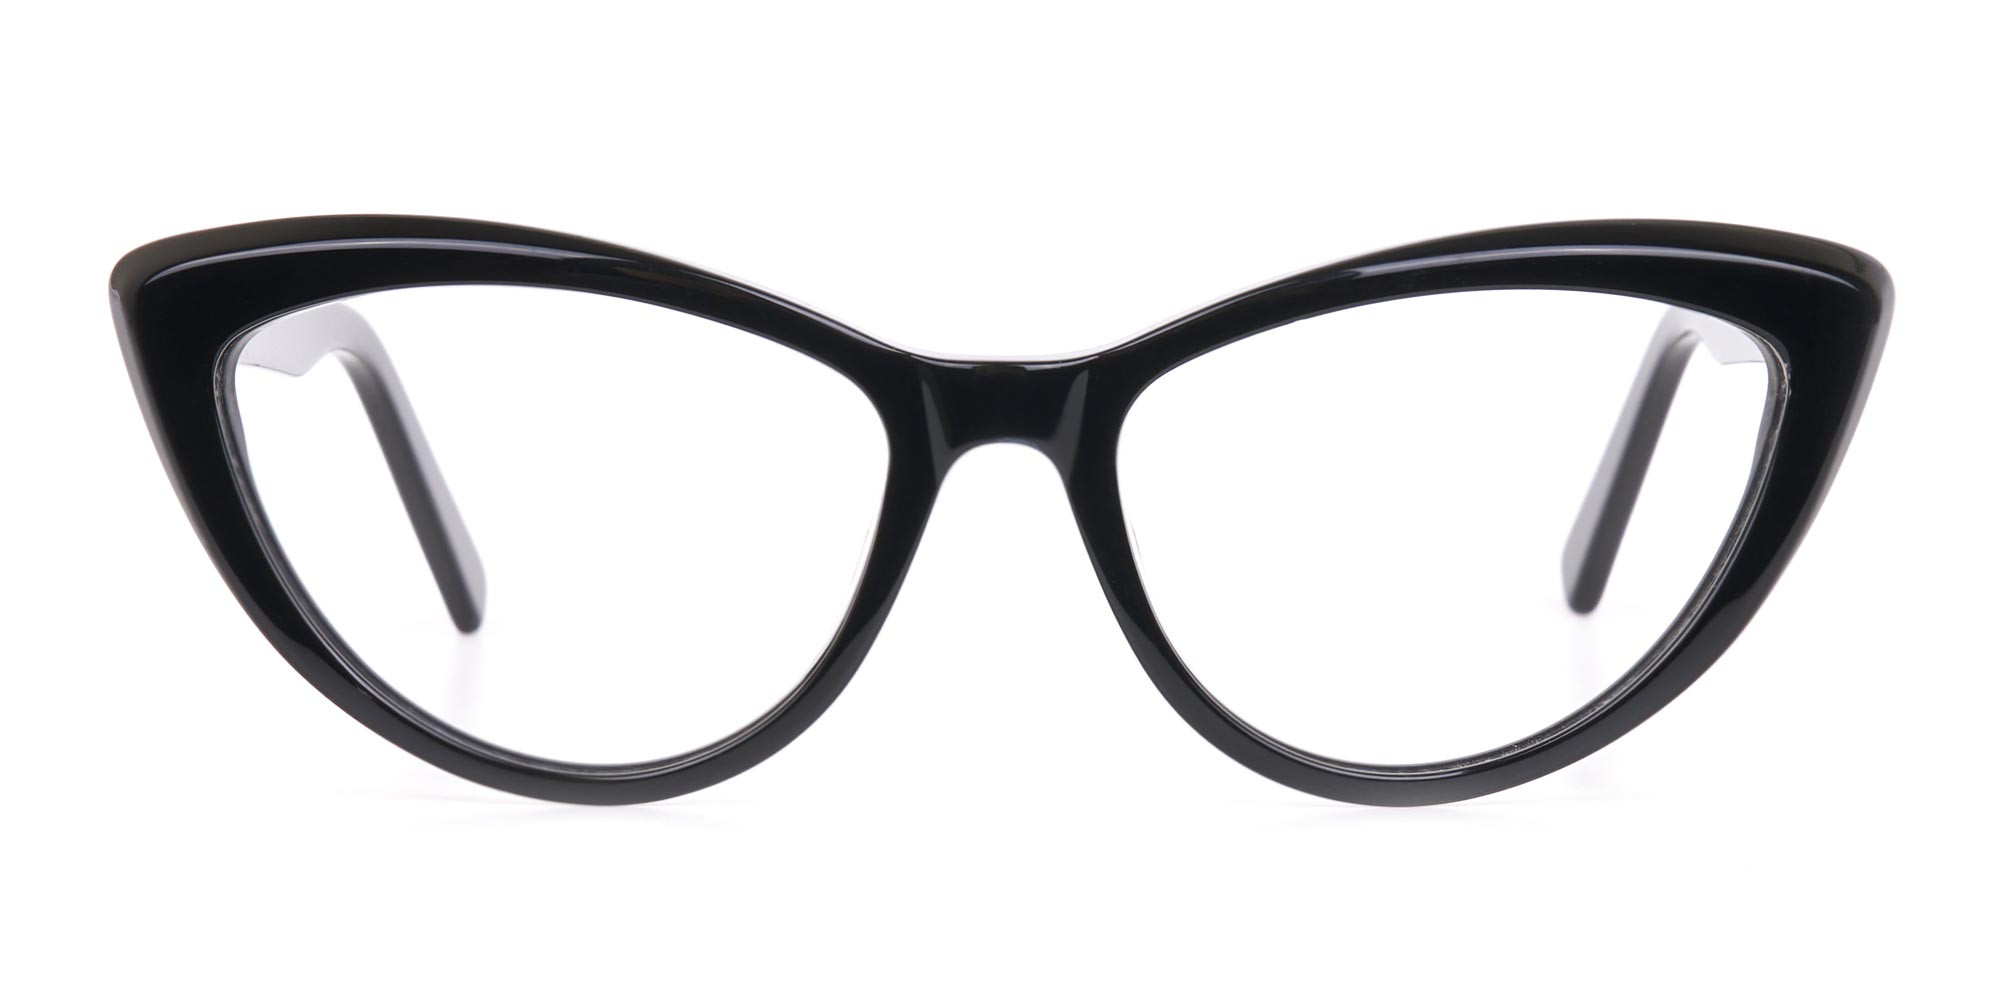 Black Cat Eye Glasses Frame For Women-1